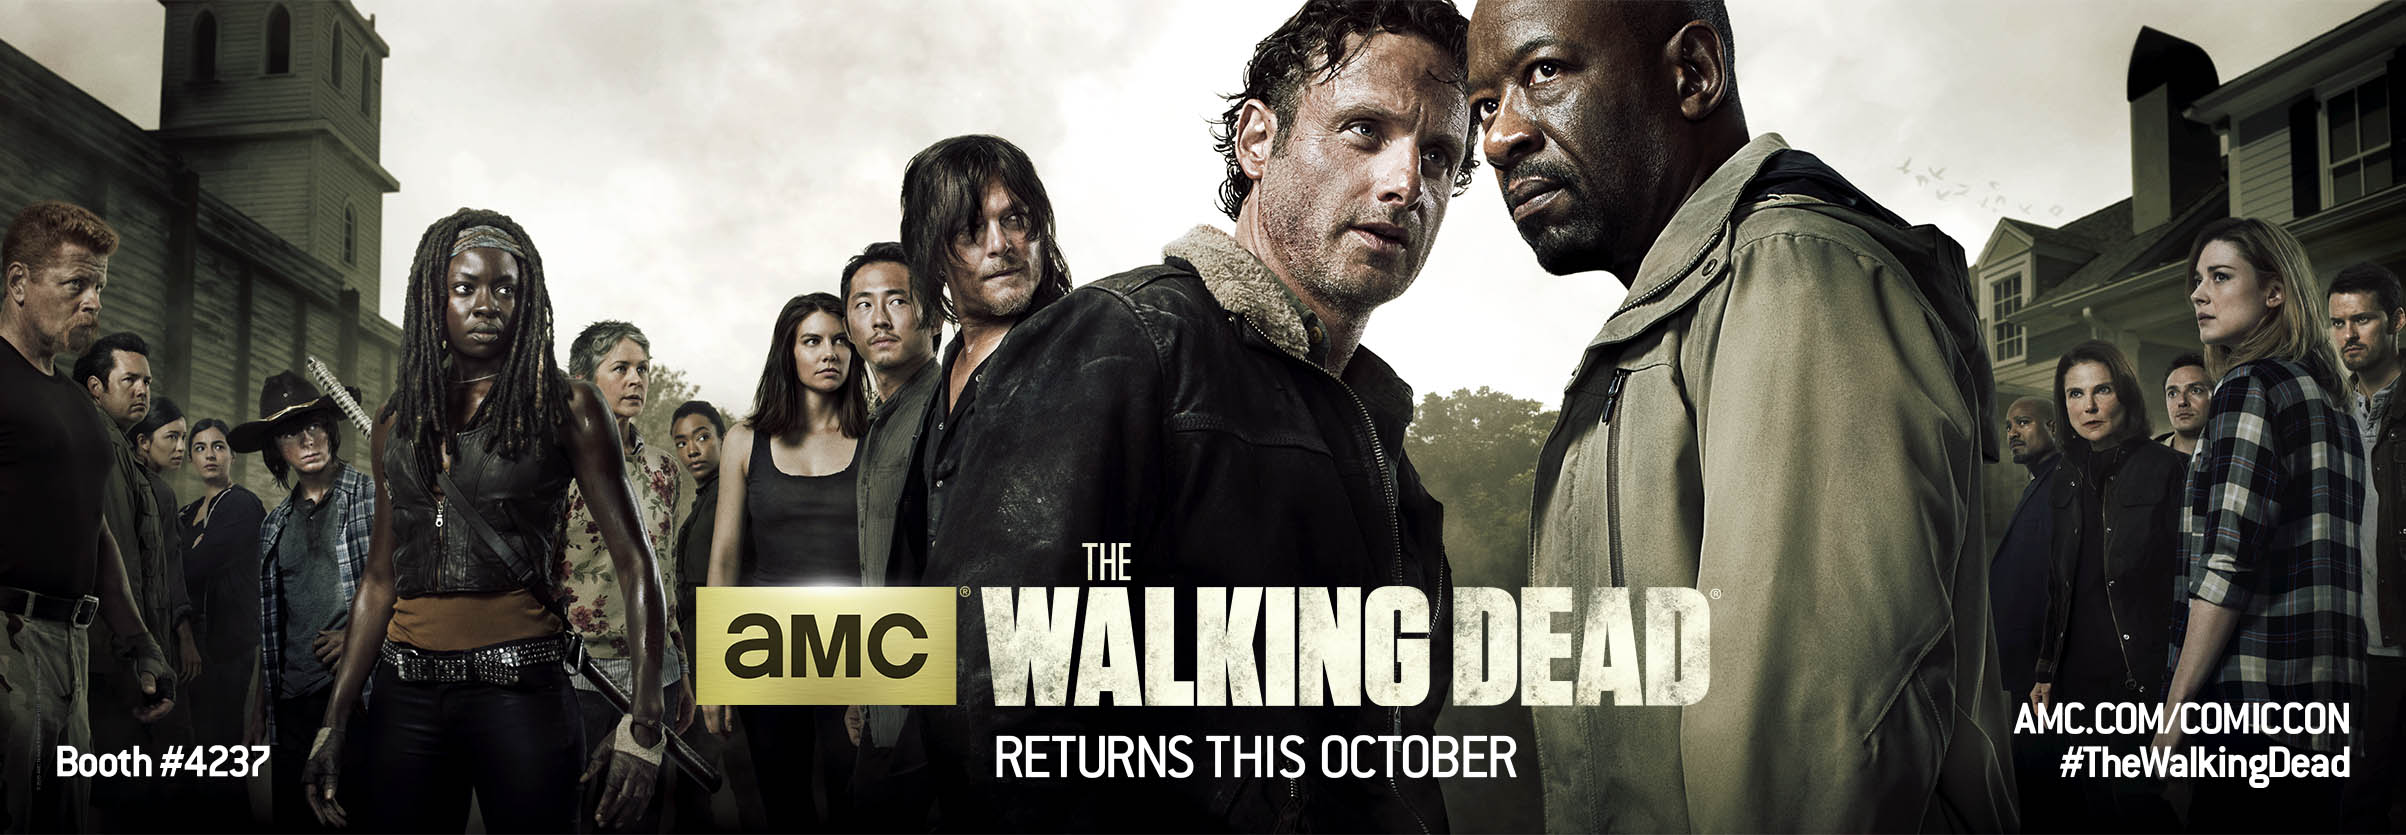 blogs the walking dead the walking dead 2015 comic con poster revealed amc. Black Bedroom Furniture Sets. Home Design Ideas